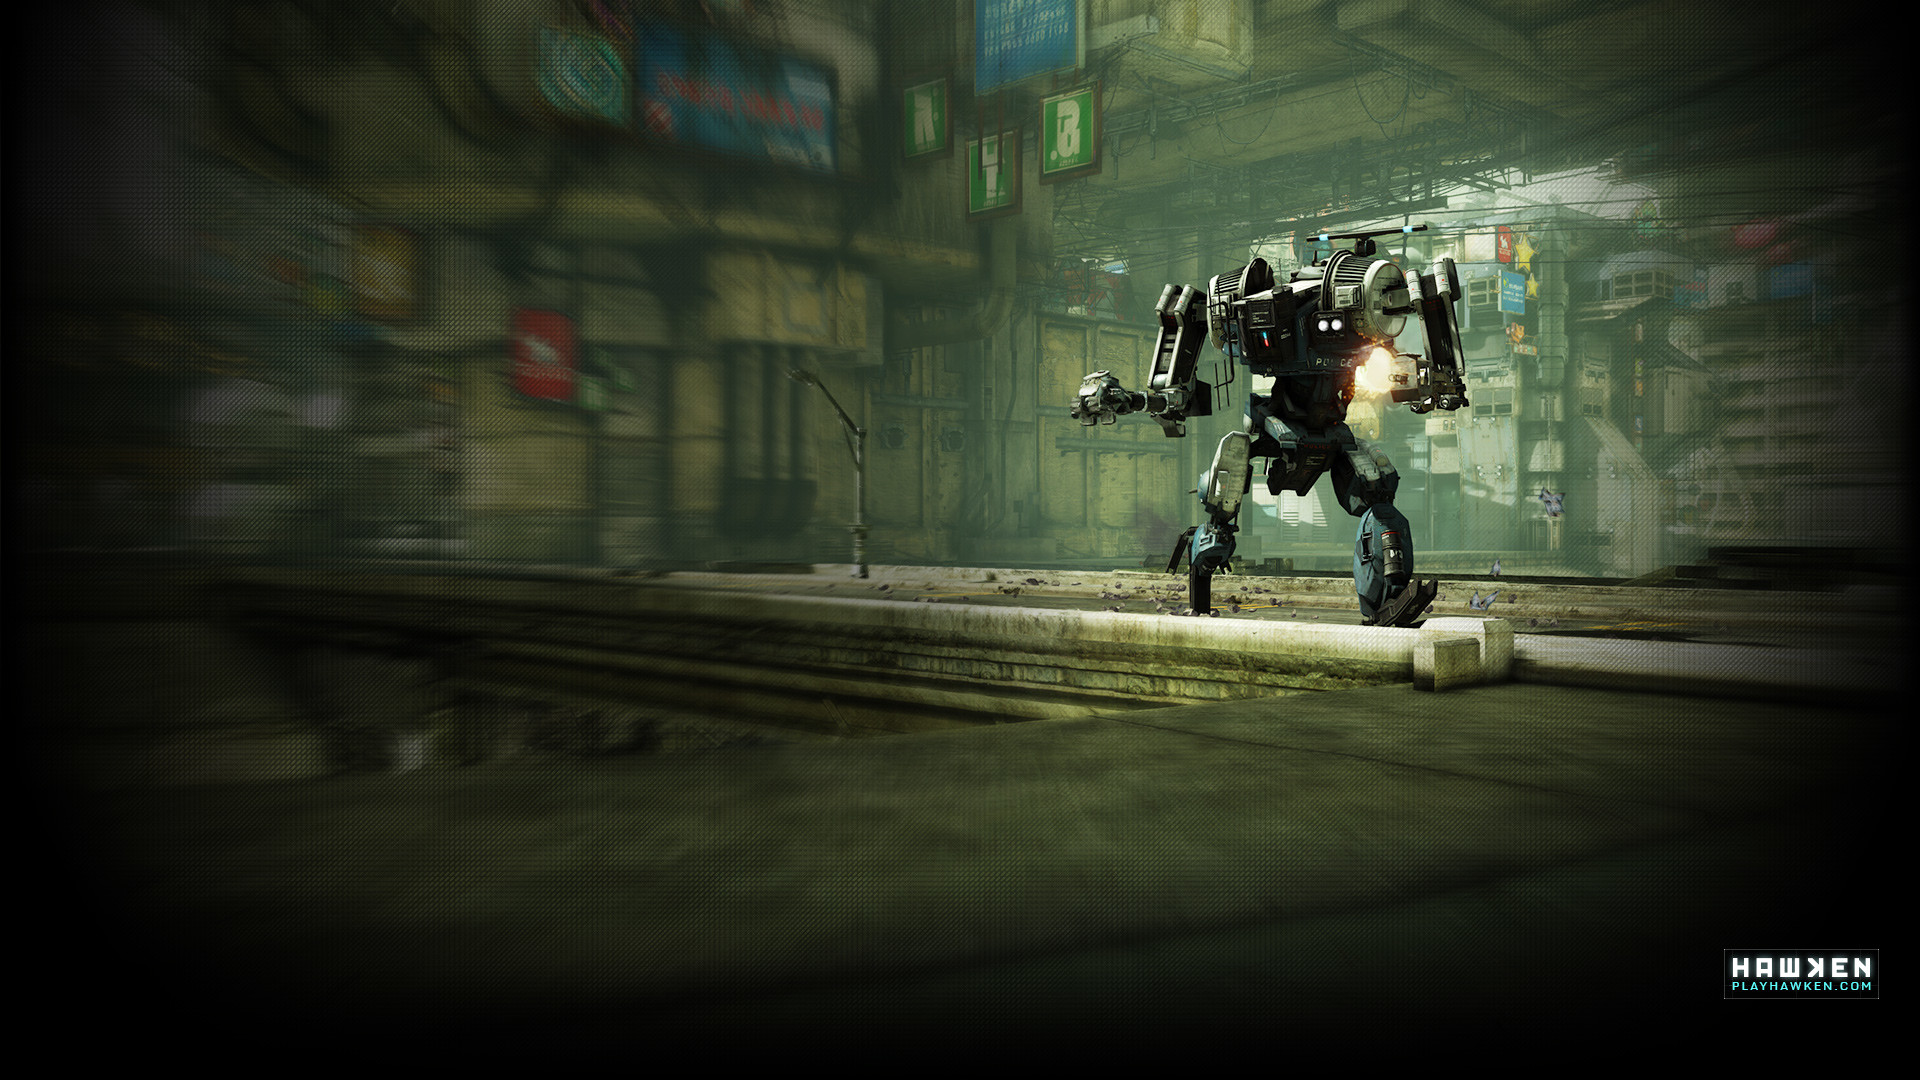 Res: 1920x1080, HAWKEN Wallpapers - Free-to-Play Multiplayer First-Person-Shooter - HAWKEN:  War is A Machine